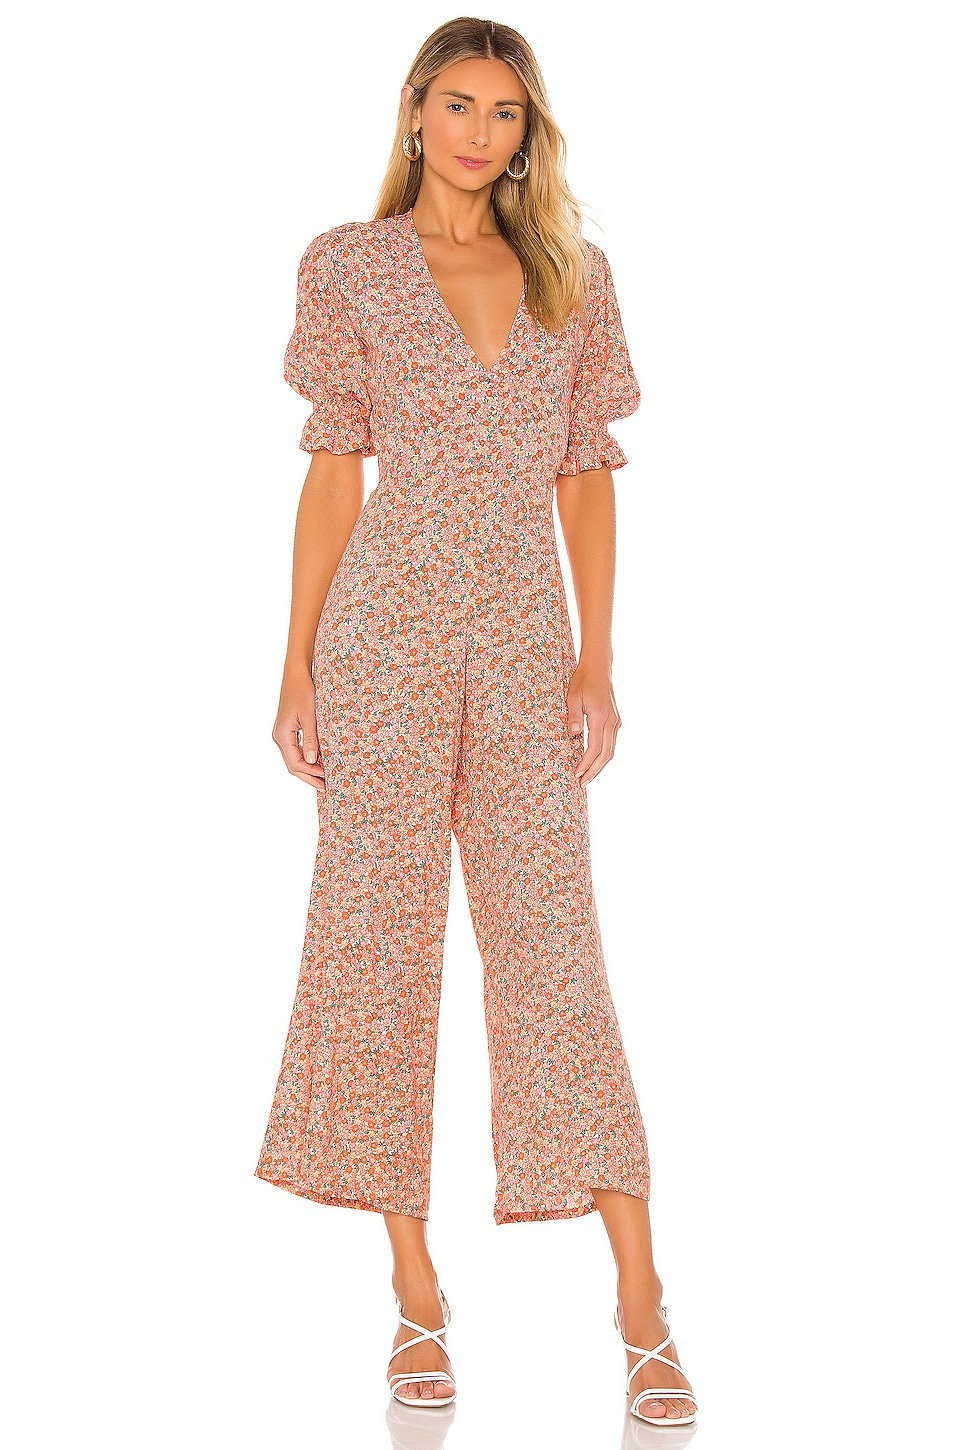 FAITHFULL THE BRAND Anika Jumpsuit in Mathiola Floral